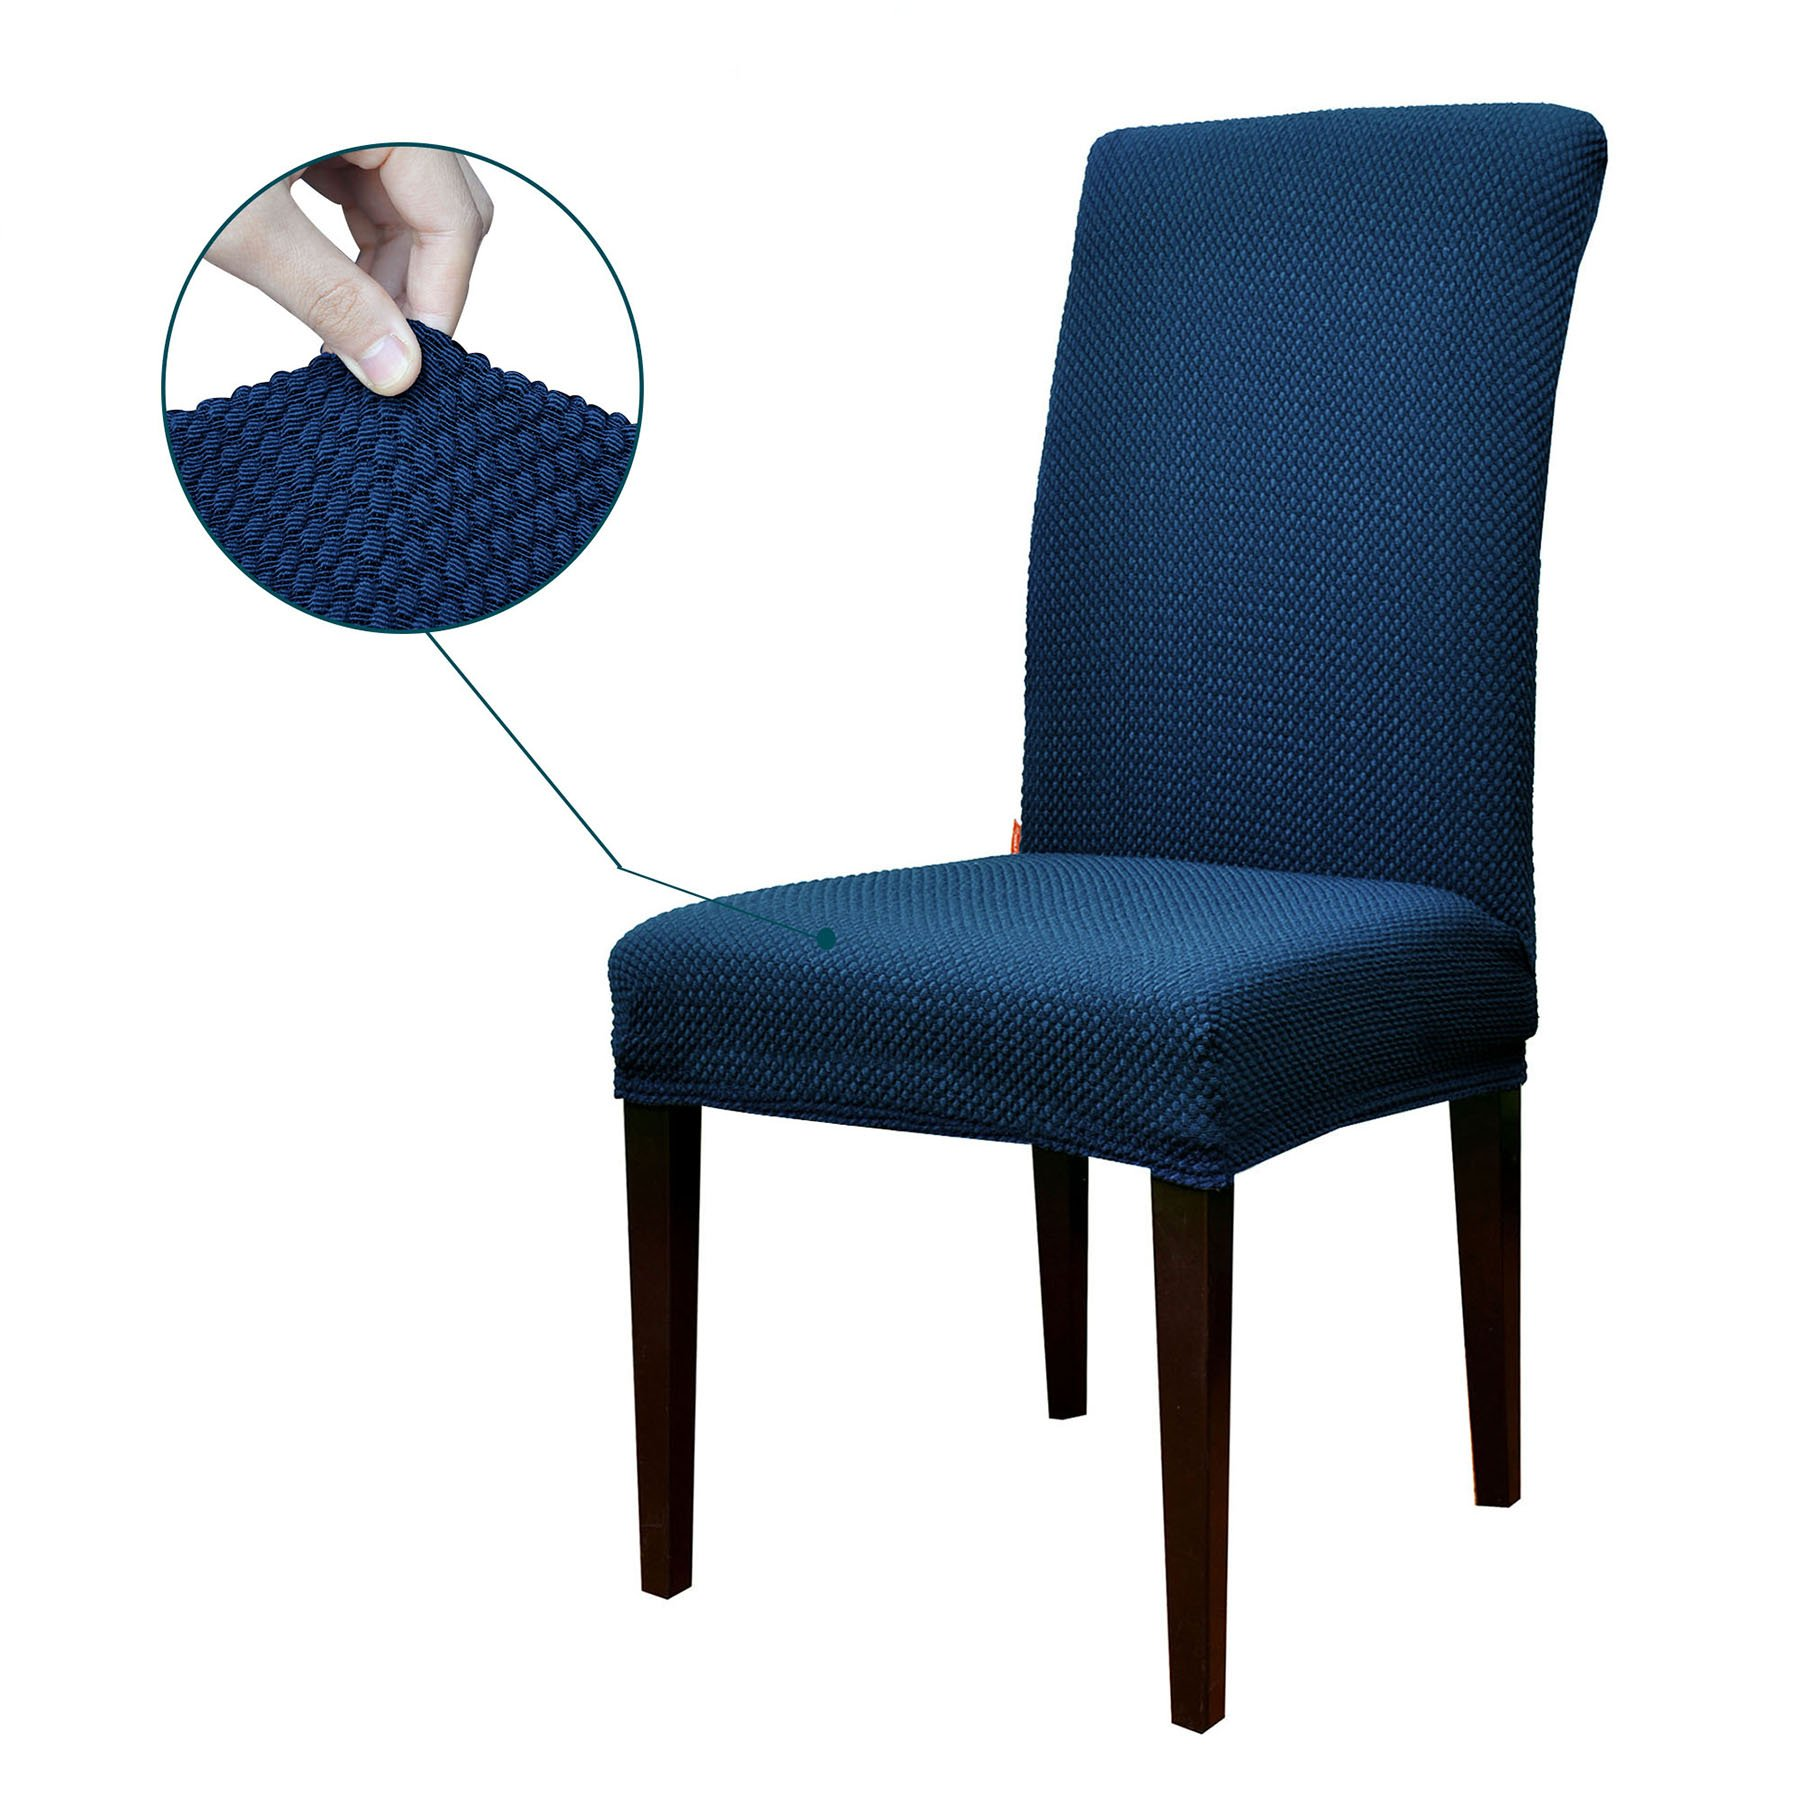 blue dining room chair covers | jacquard stretch dining room chair slipcovers 2, blue ...